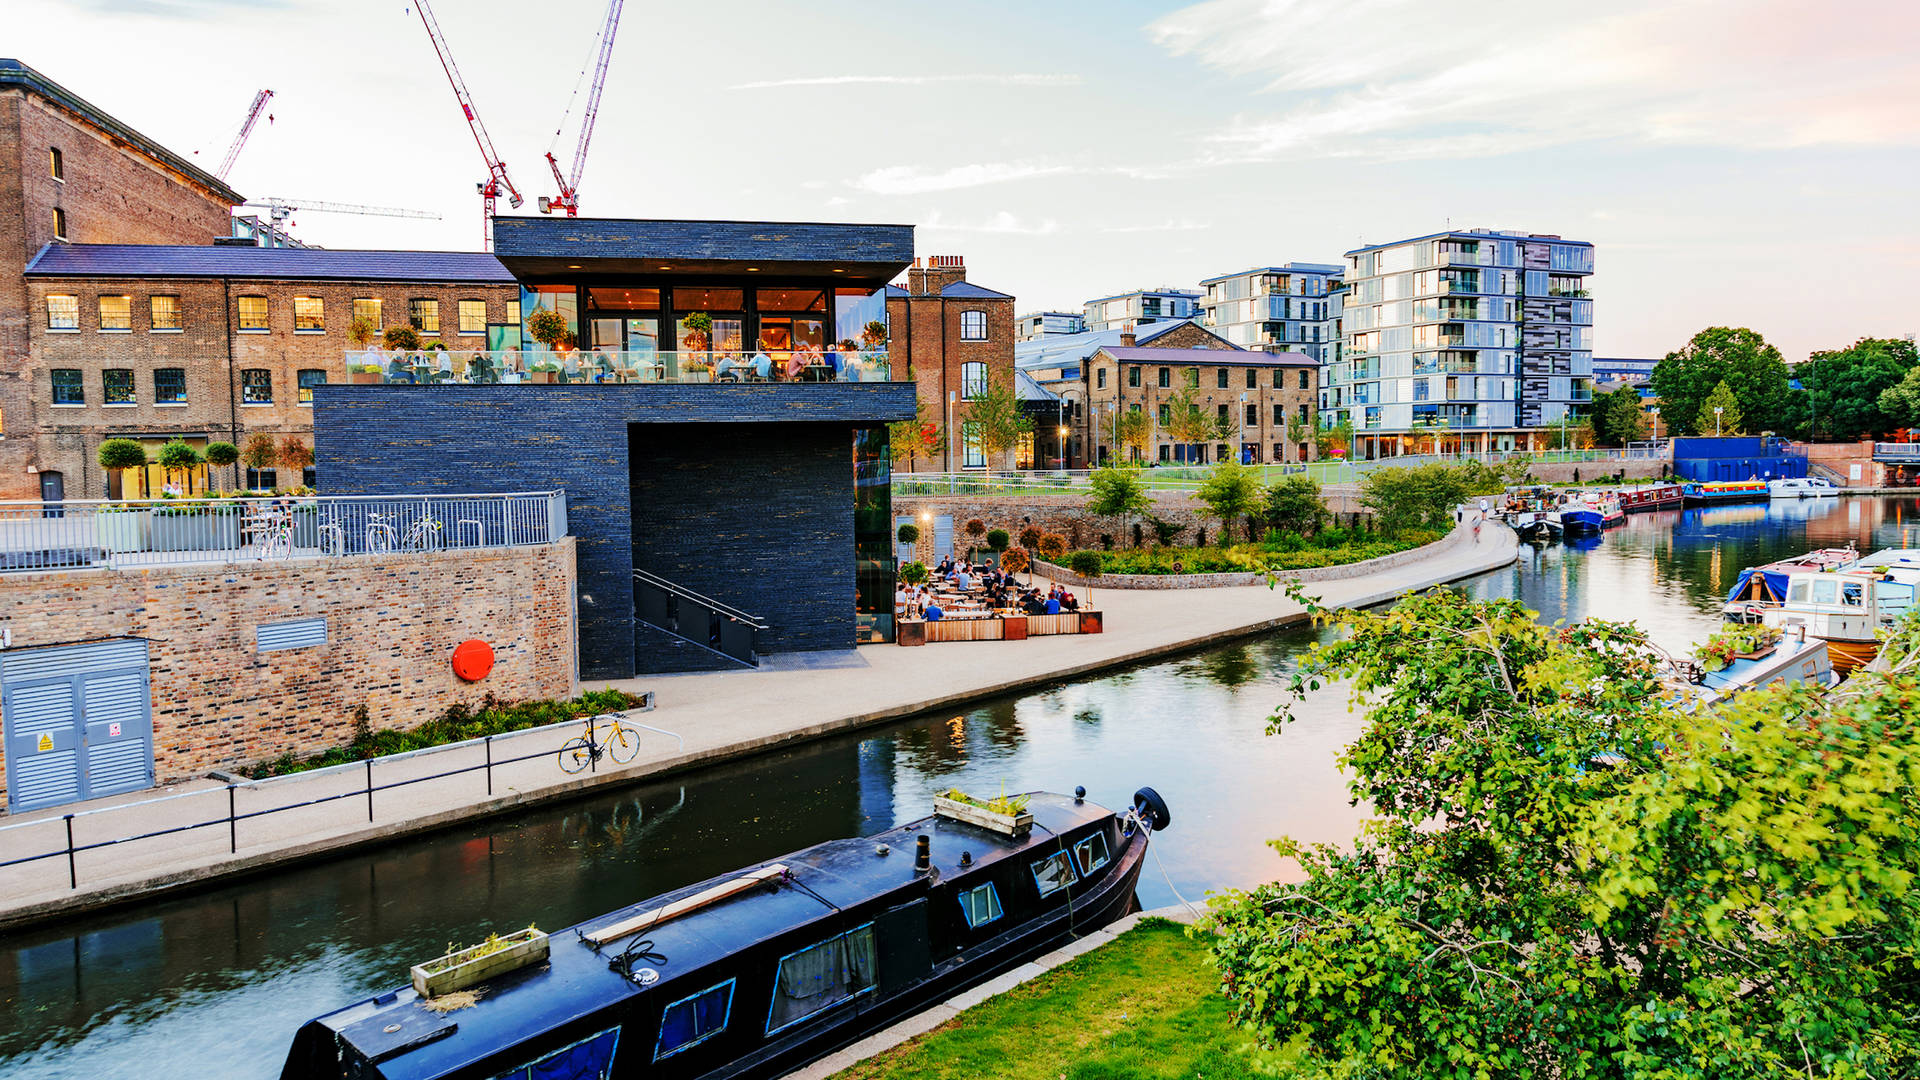 A barge on Regent's Canal